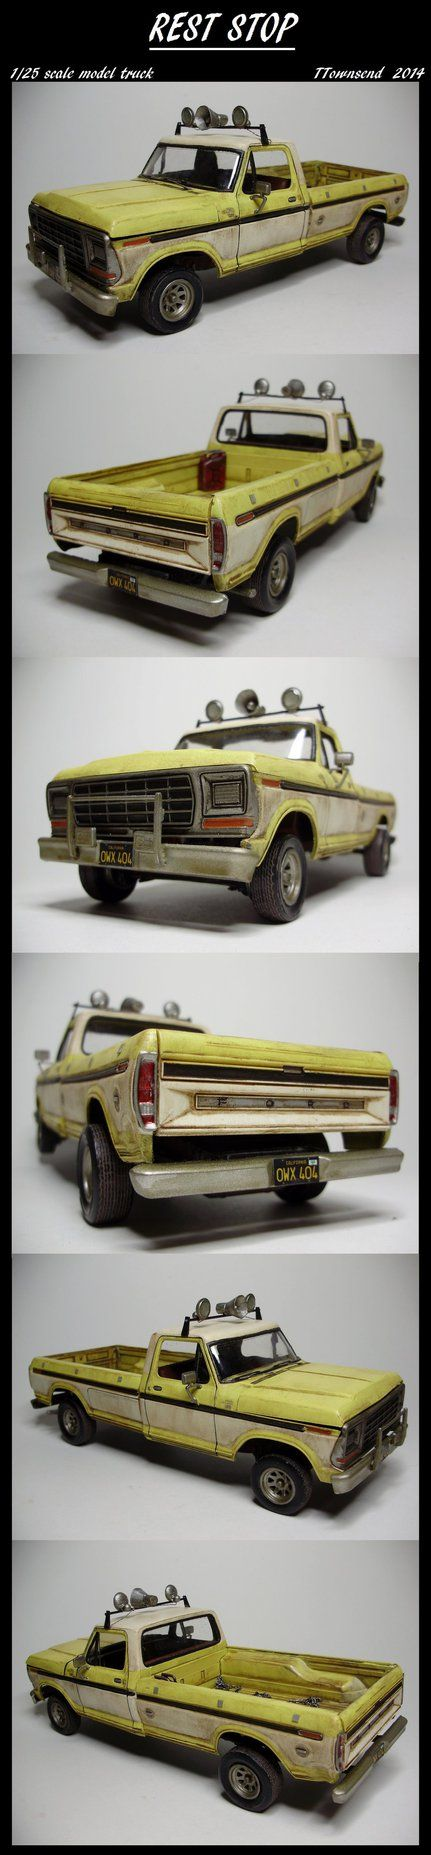 1978 chevy stepside truck lifted 1978 chevy 7 500 aurora - I Wanted To Take A Crack At The Truck From The Movie Rest Stop For A While And Just Recently Got My Hands On A 1978 Ford Model Kit Its Not Exac